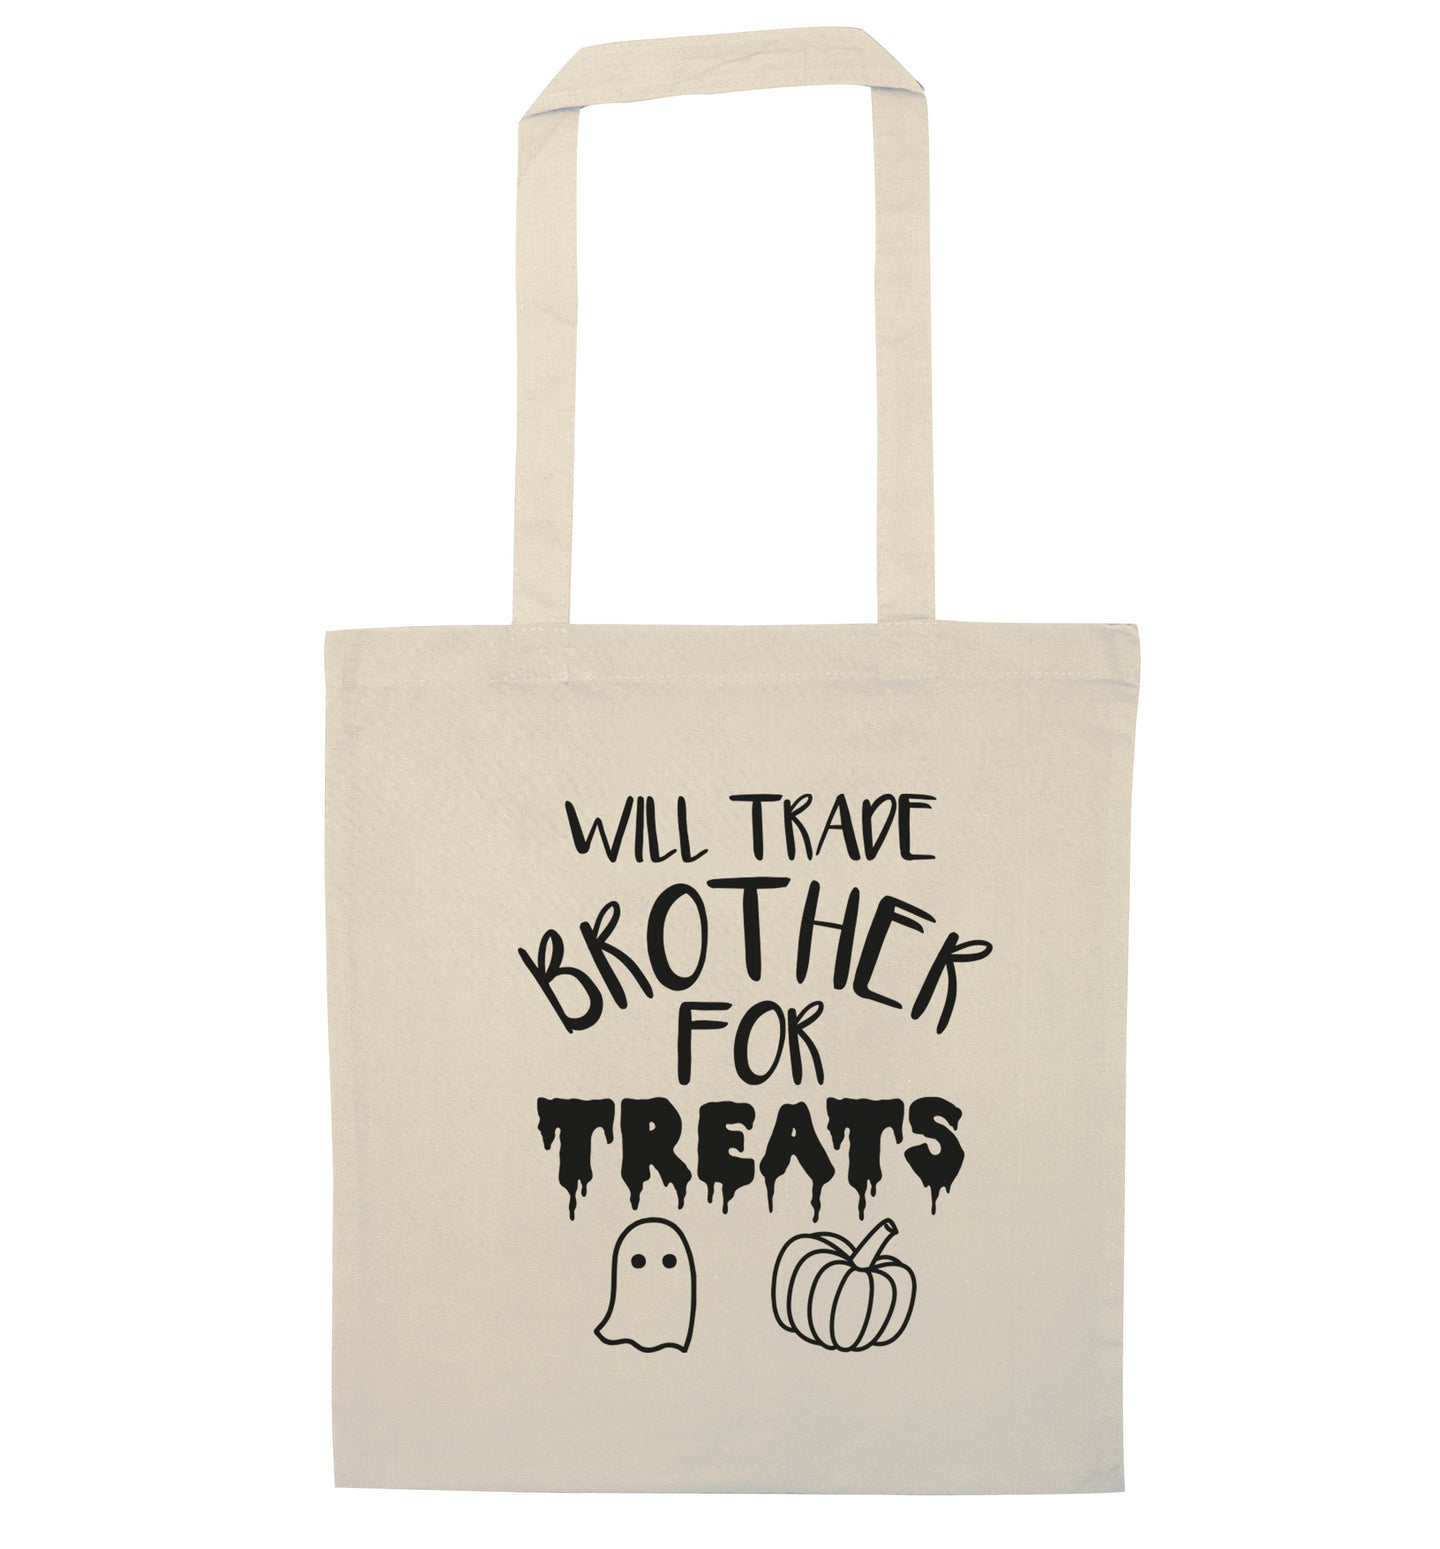 Will trade brother for treats natural tote bag